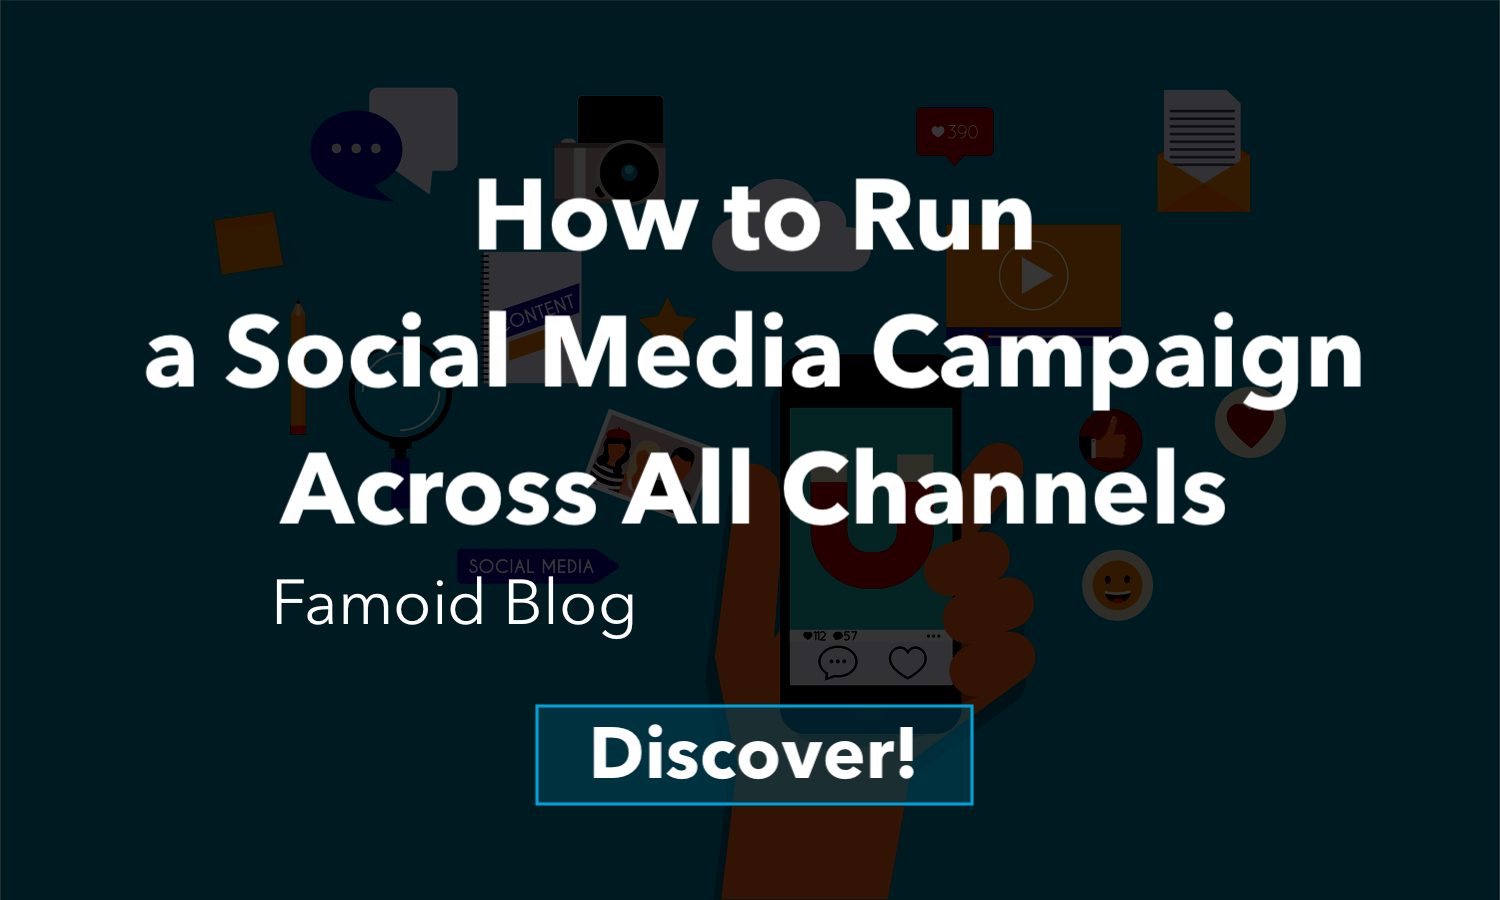 How to Run a Social Media Campaign Across All Channels